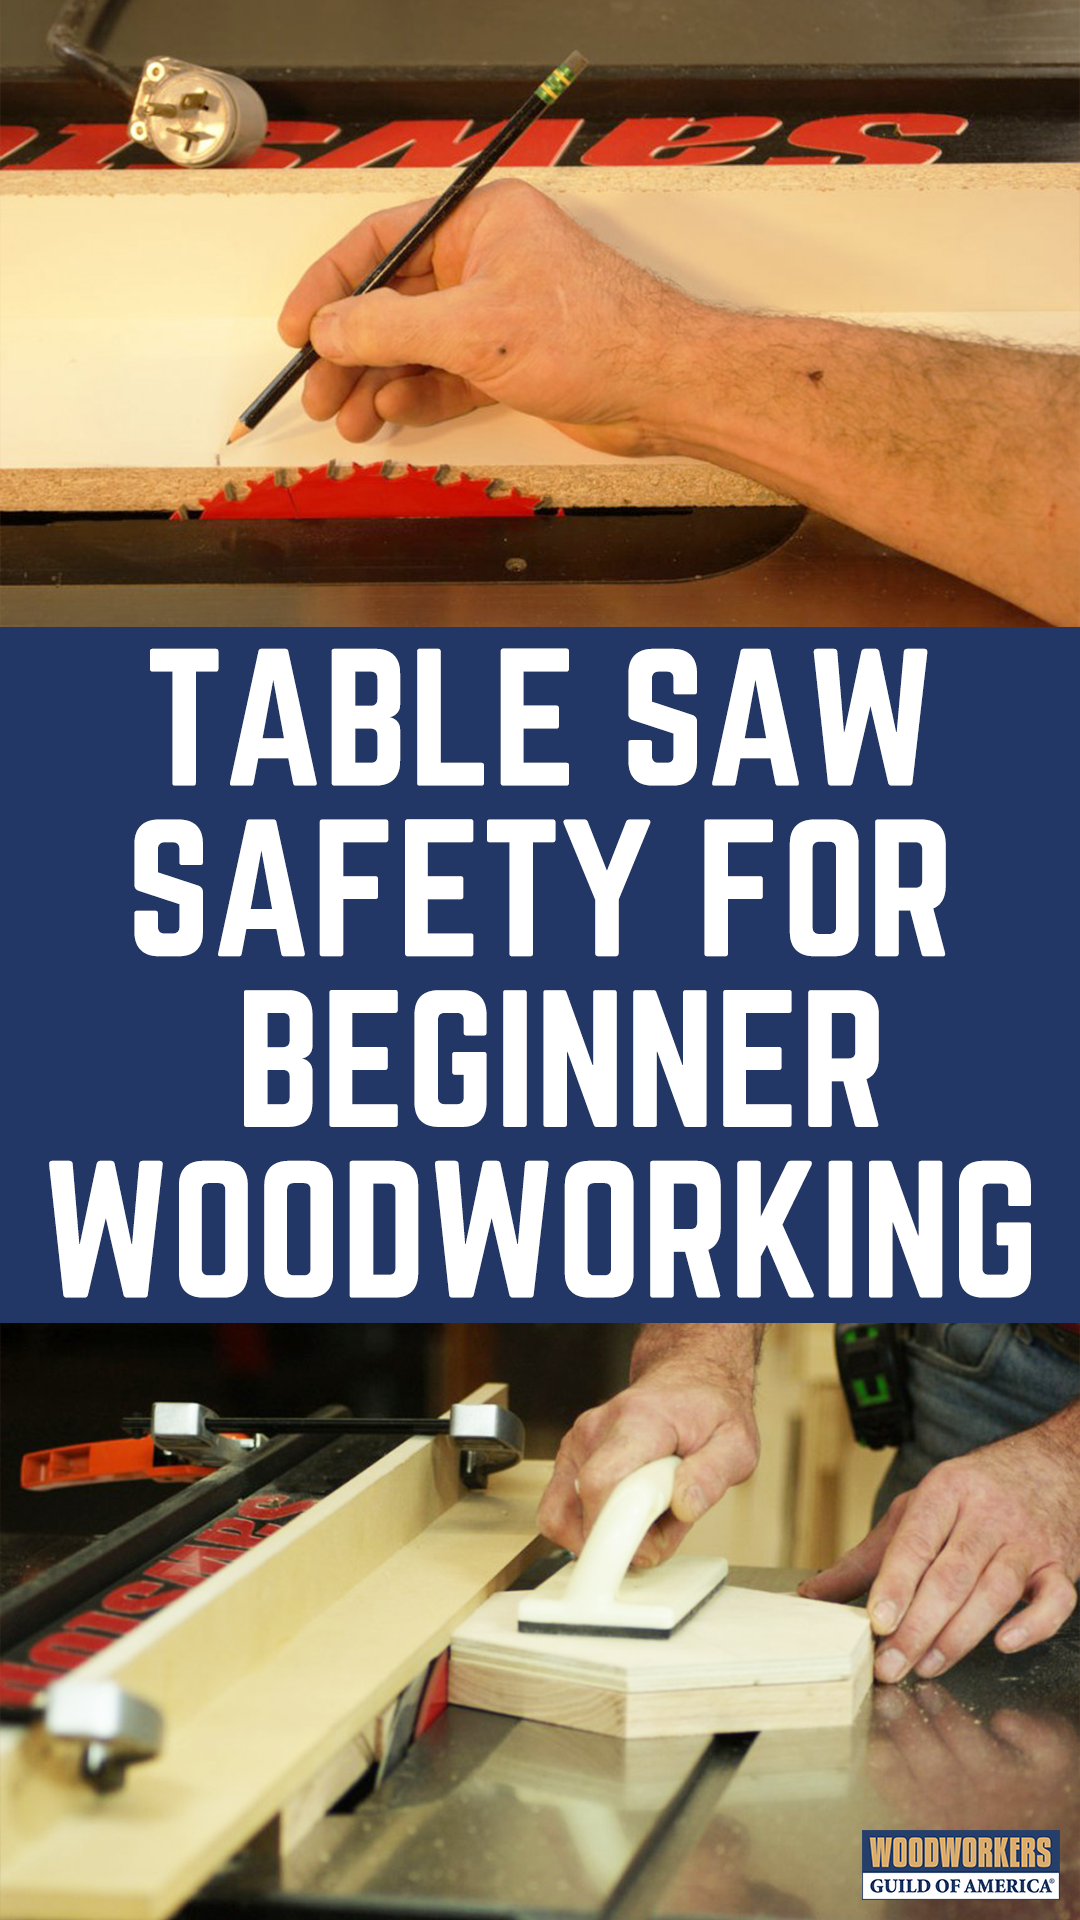 Table Saw Safety For Beginner Woodworking In 2020 Wood Working For Beginners Table Saw Safety Woodworking